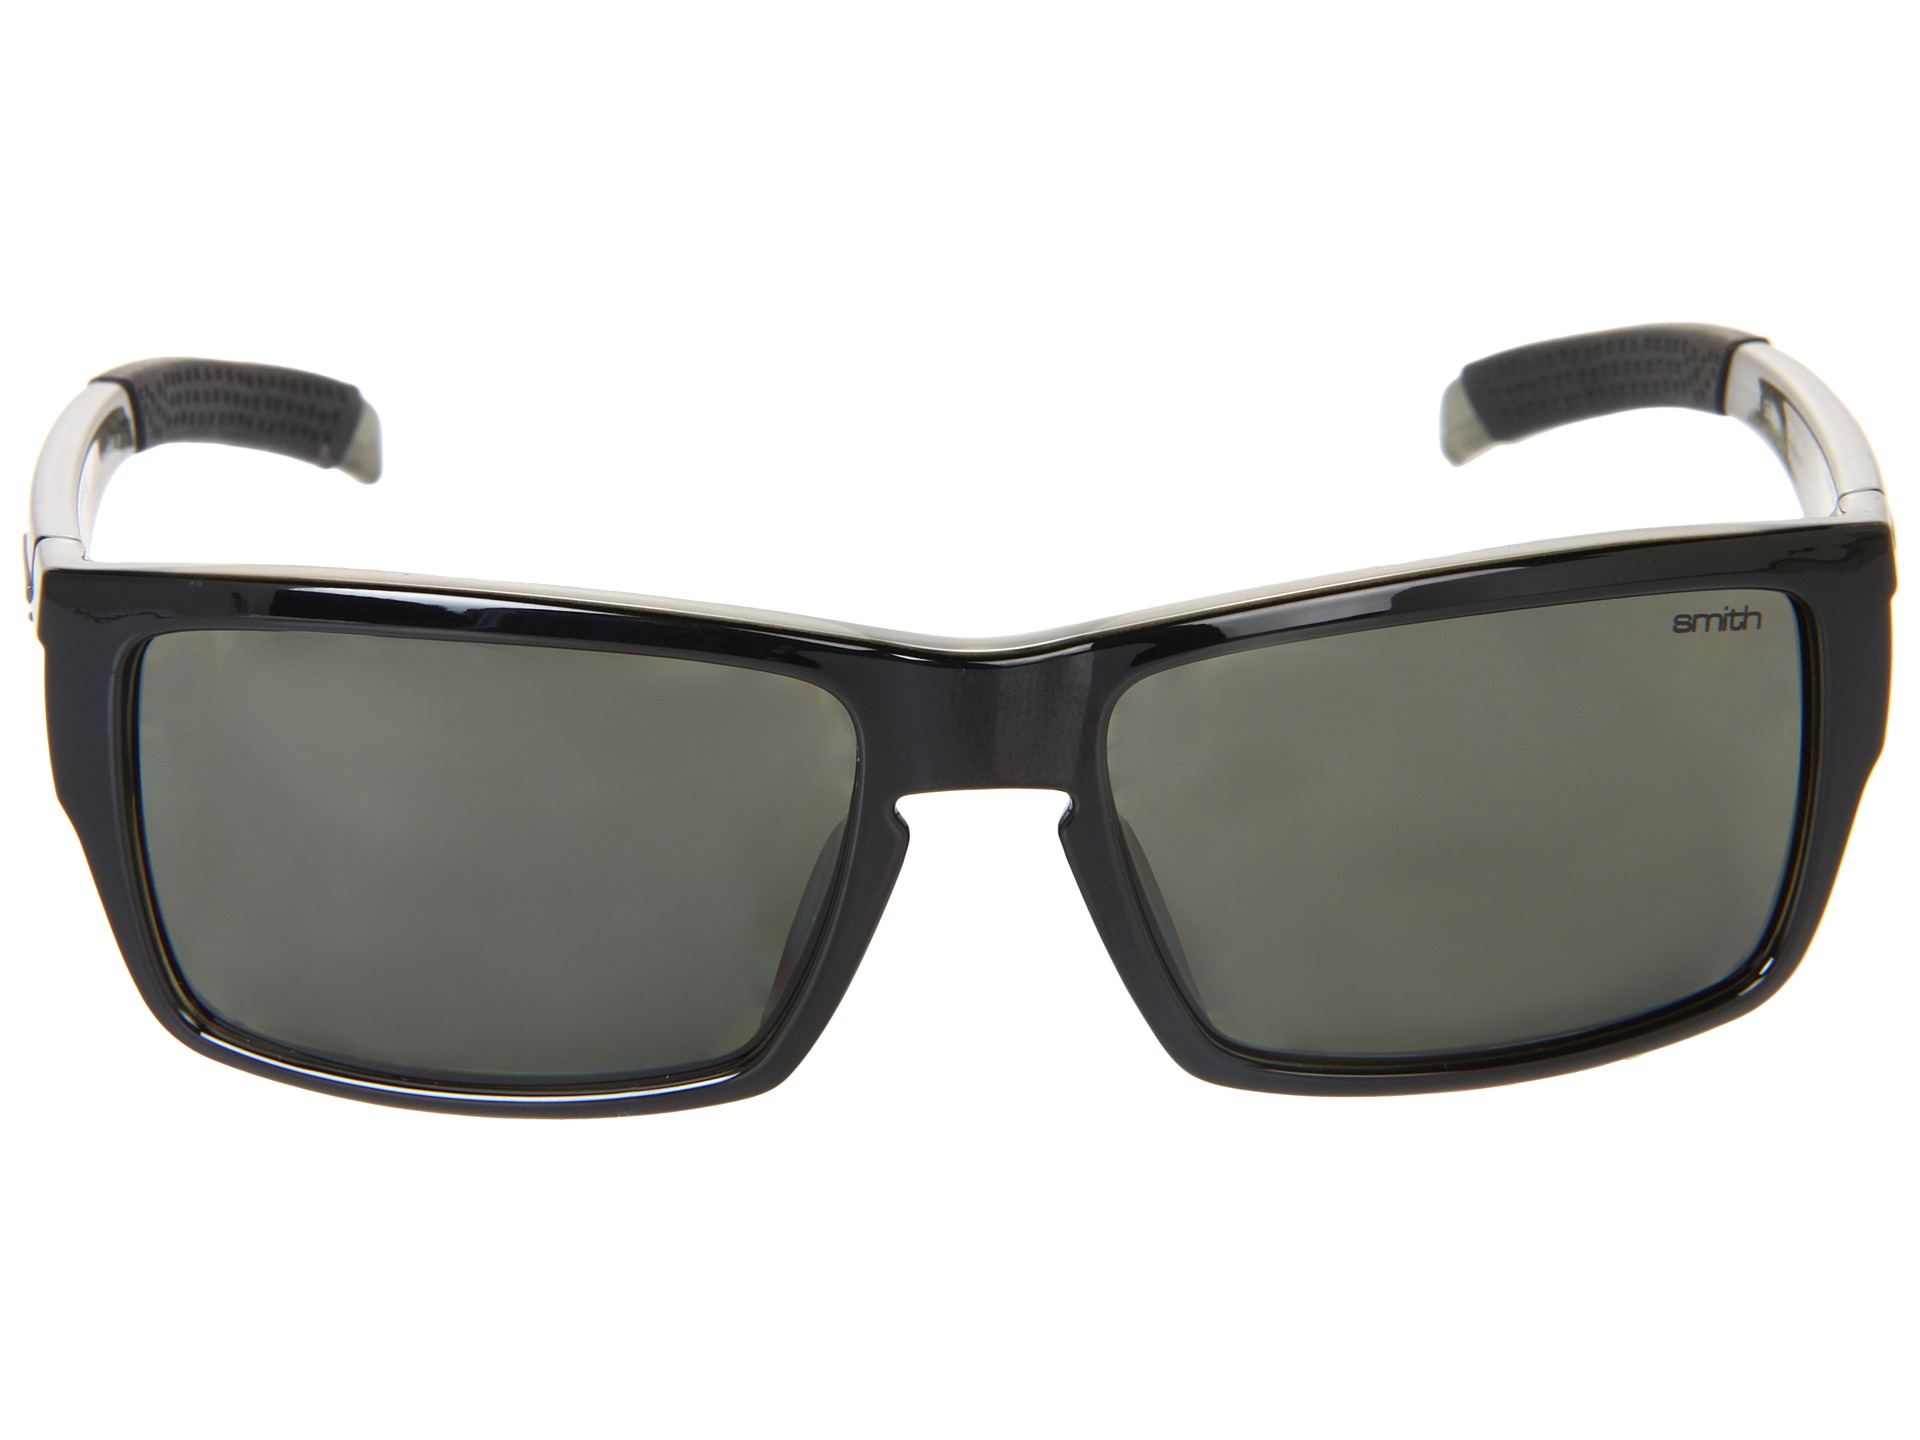 378430a2c0 Smith Outlier Sunglasses Review « Heritage Malta